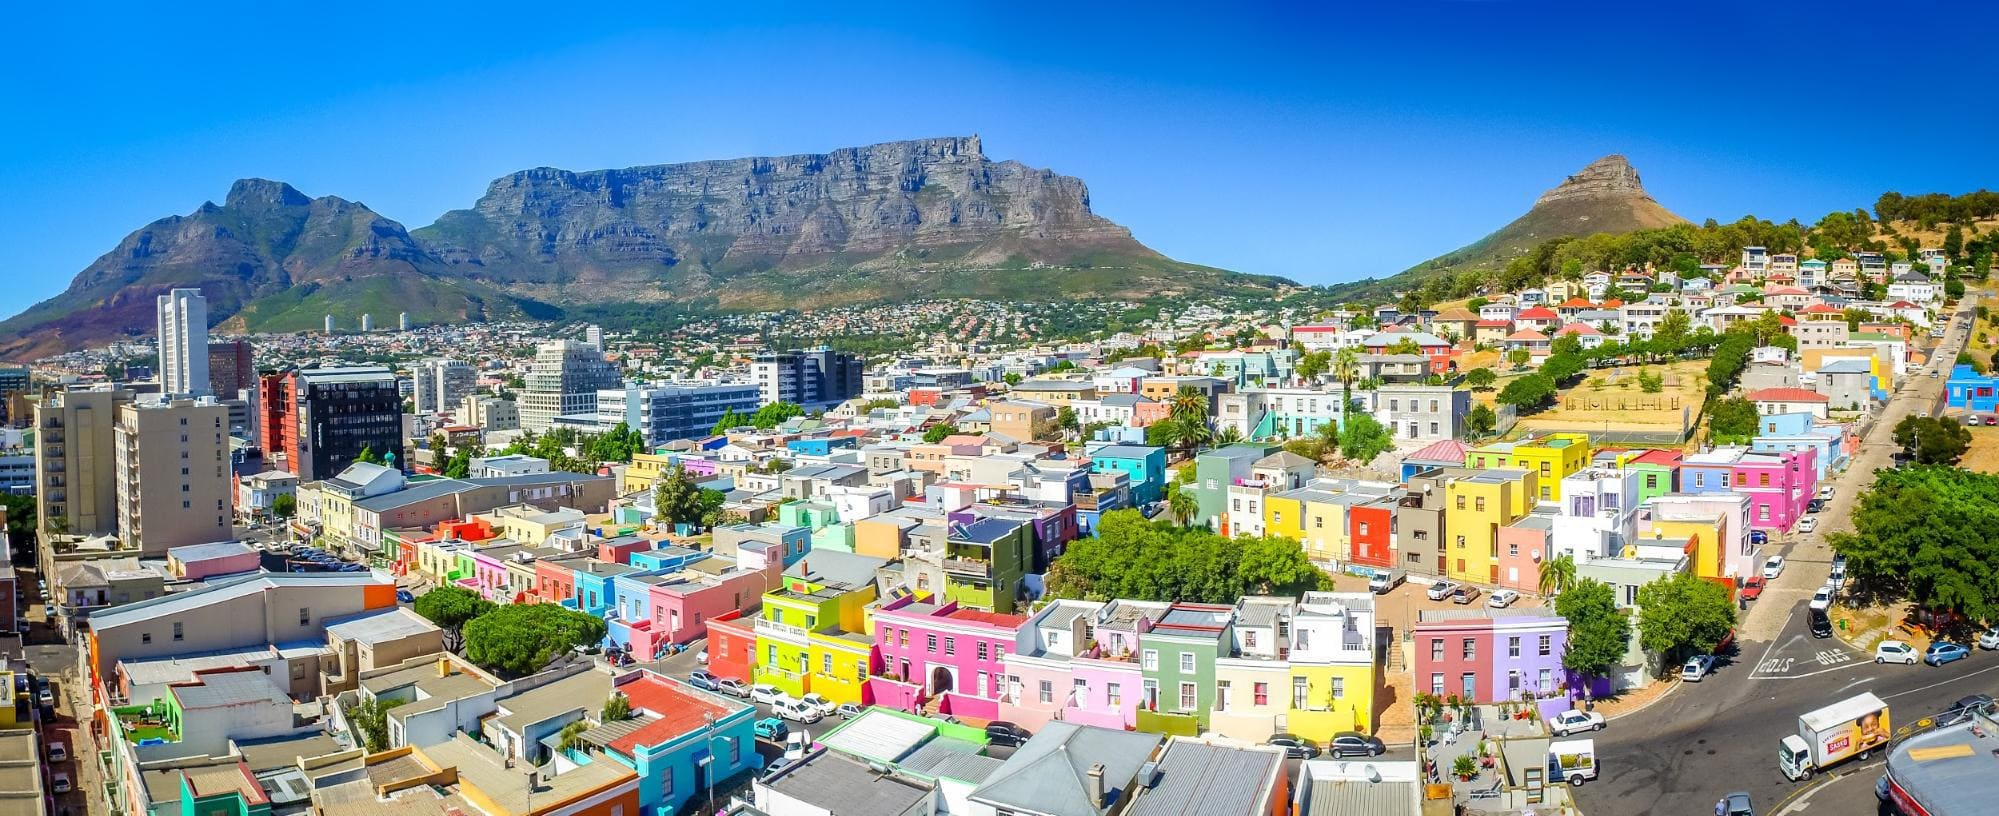 Bo Kaap, the epicenter of the Cape Malay community in Cape Town. Wikipedia SkyPixels (CC BY-SA 4.0)